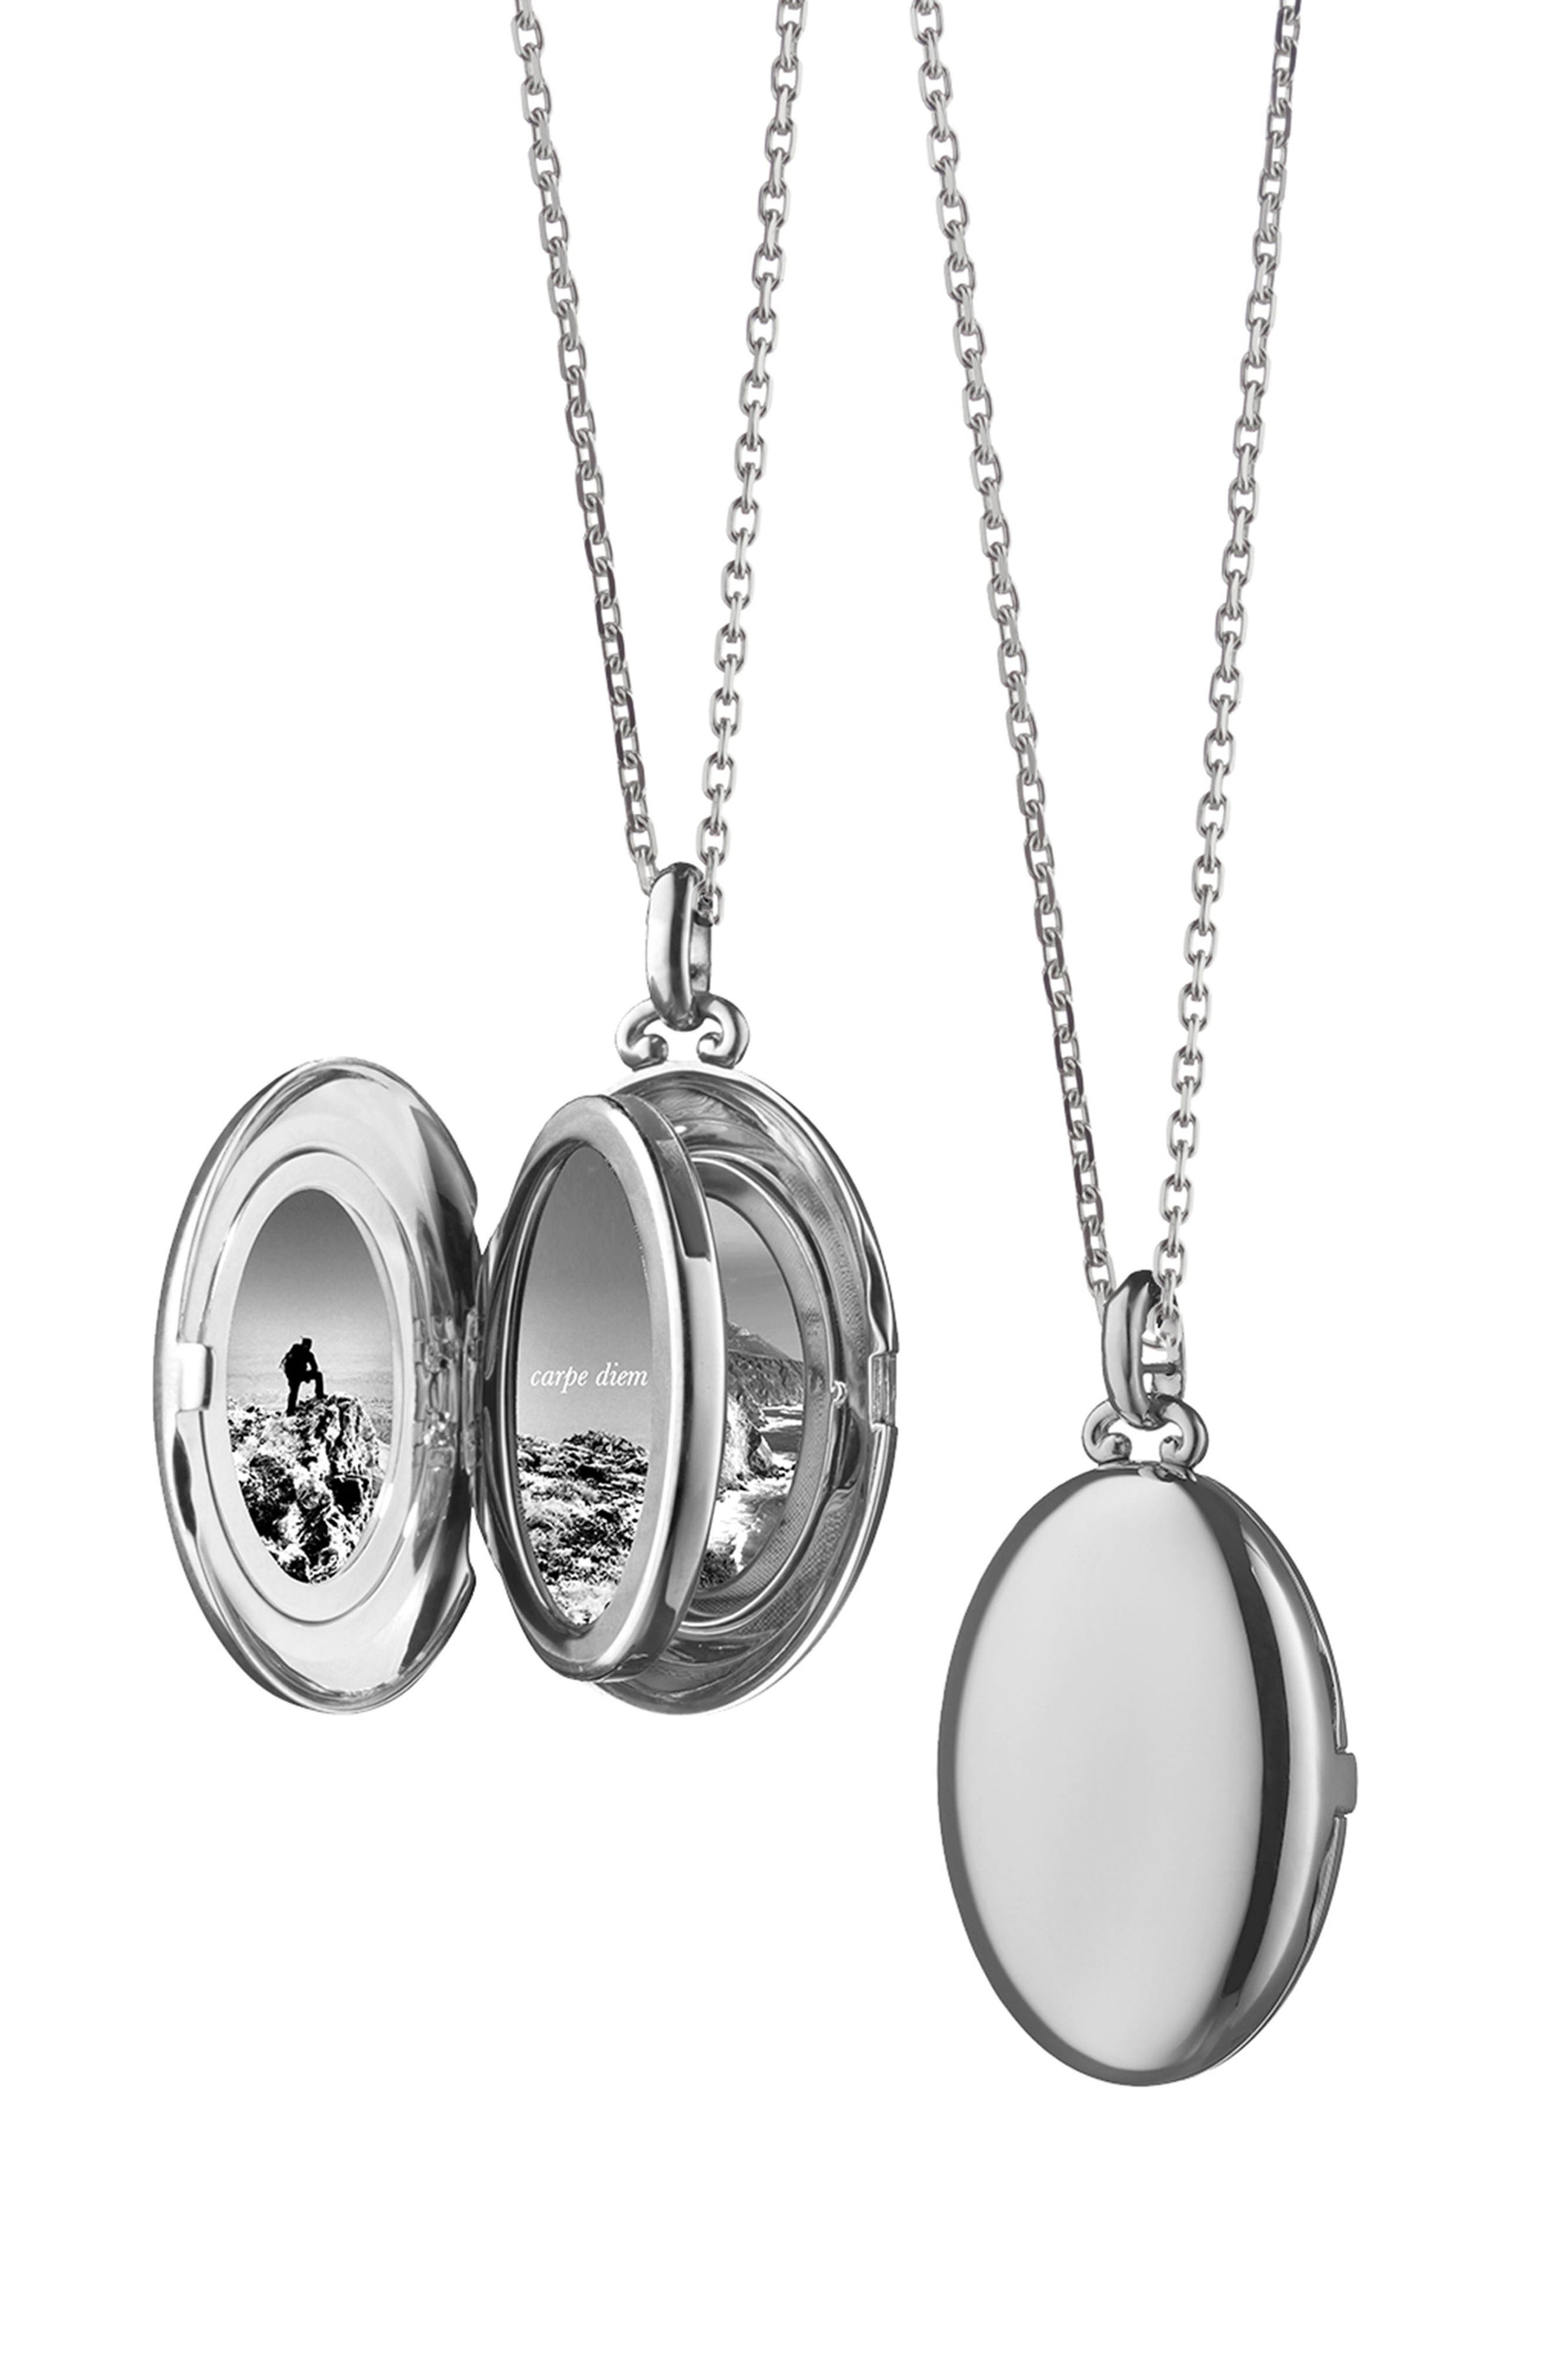 Four Image Mini Locket Necklace,                             Alternate thumbnail 3, color,                             STERLING SILVER